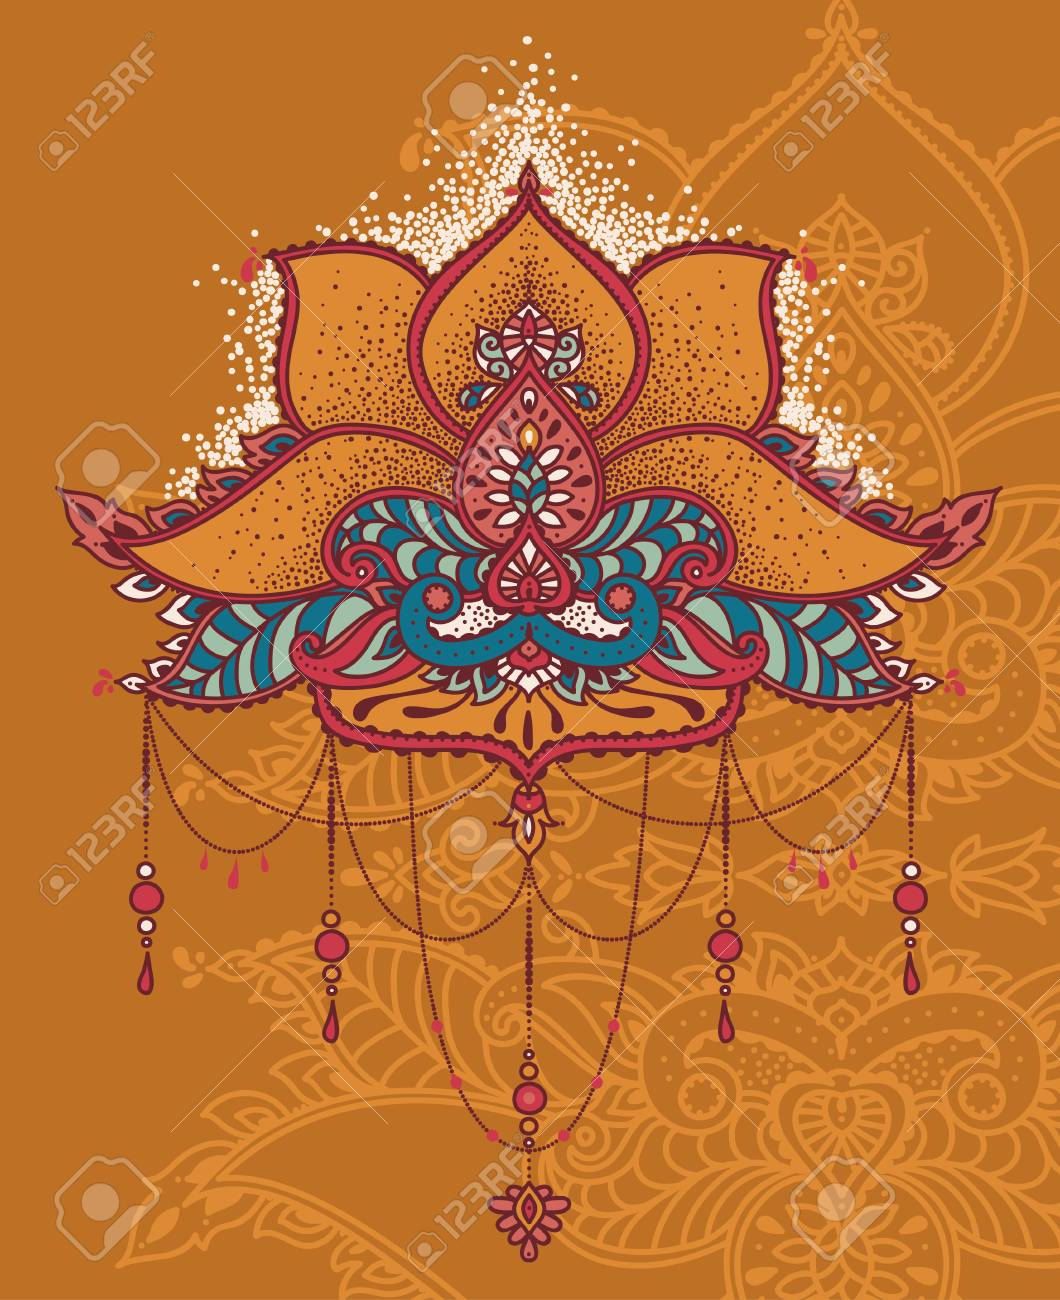 Royal Magical Ornament Stylized Lotus Flower In Indian Style